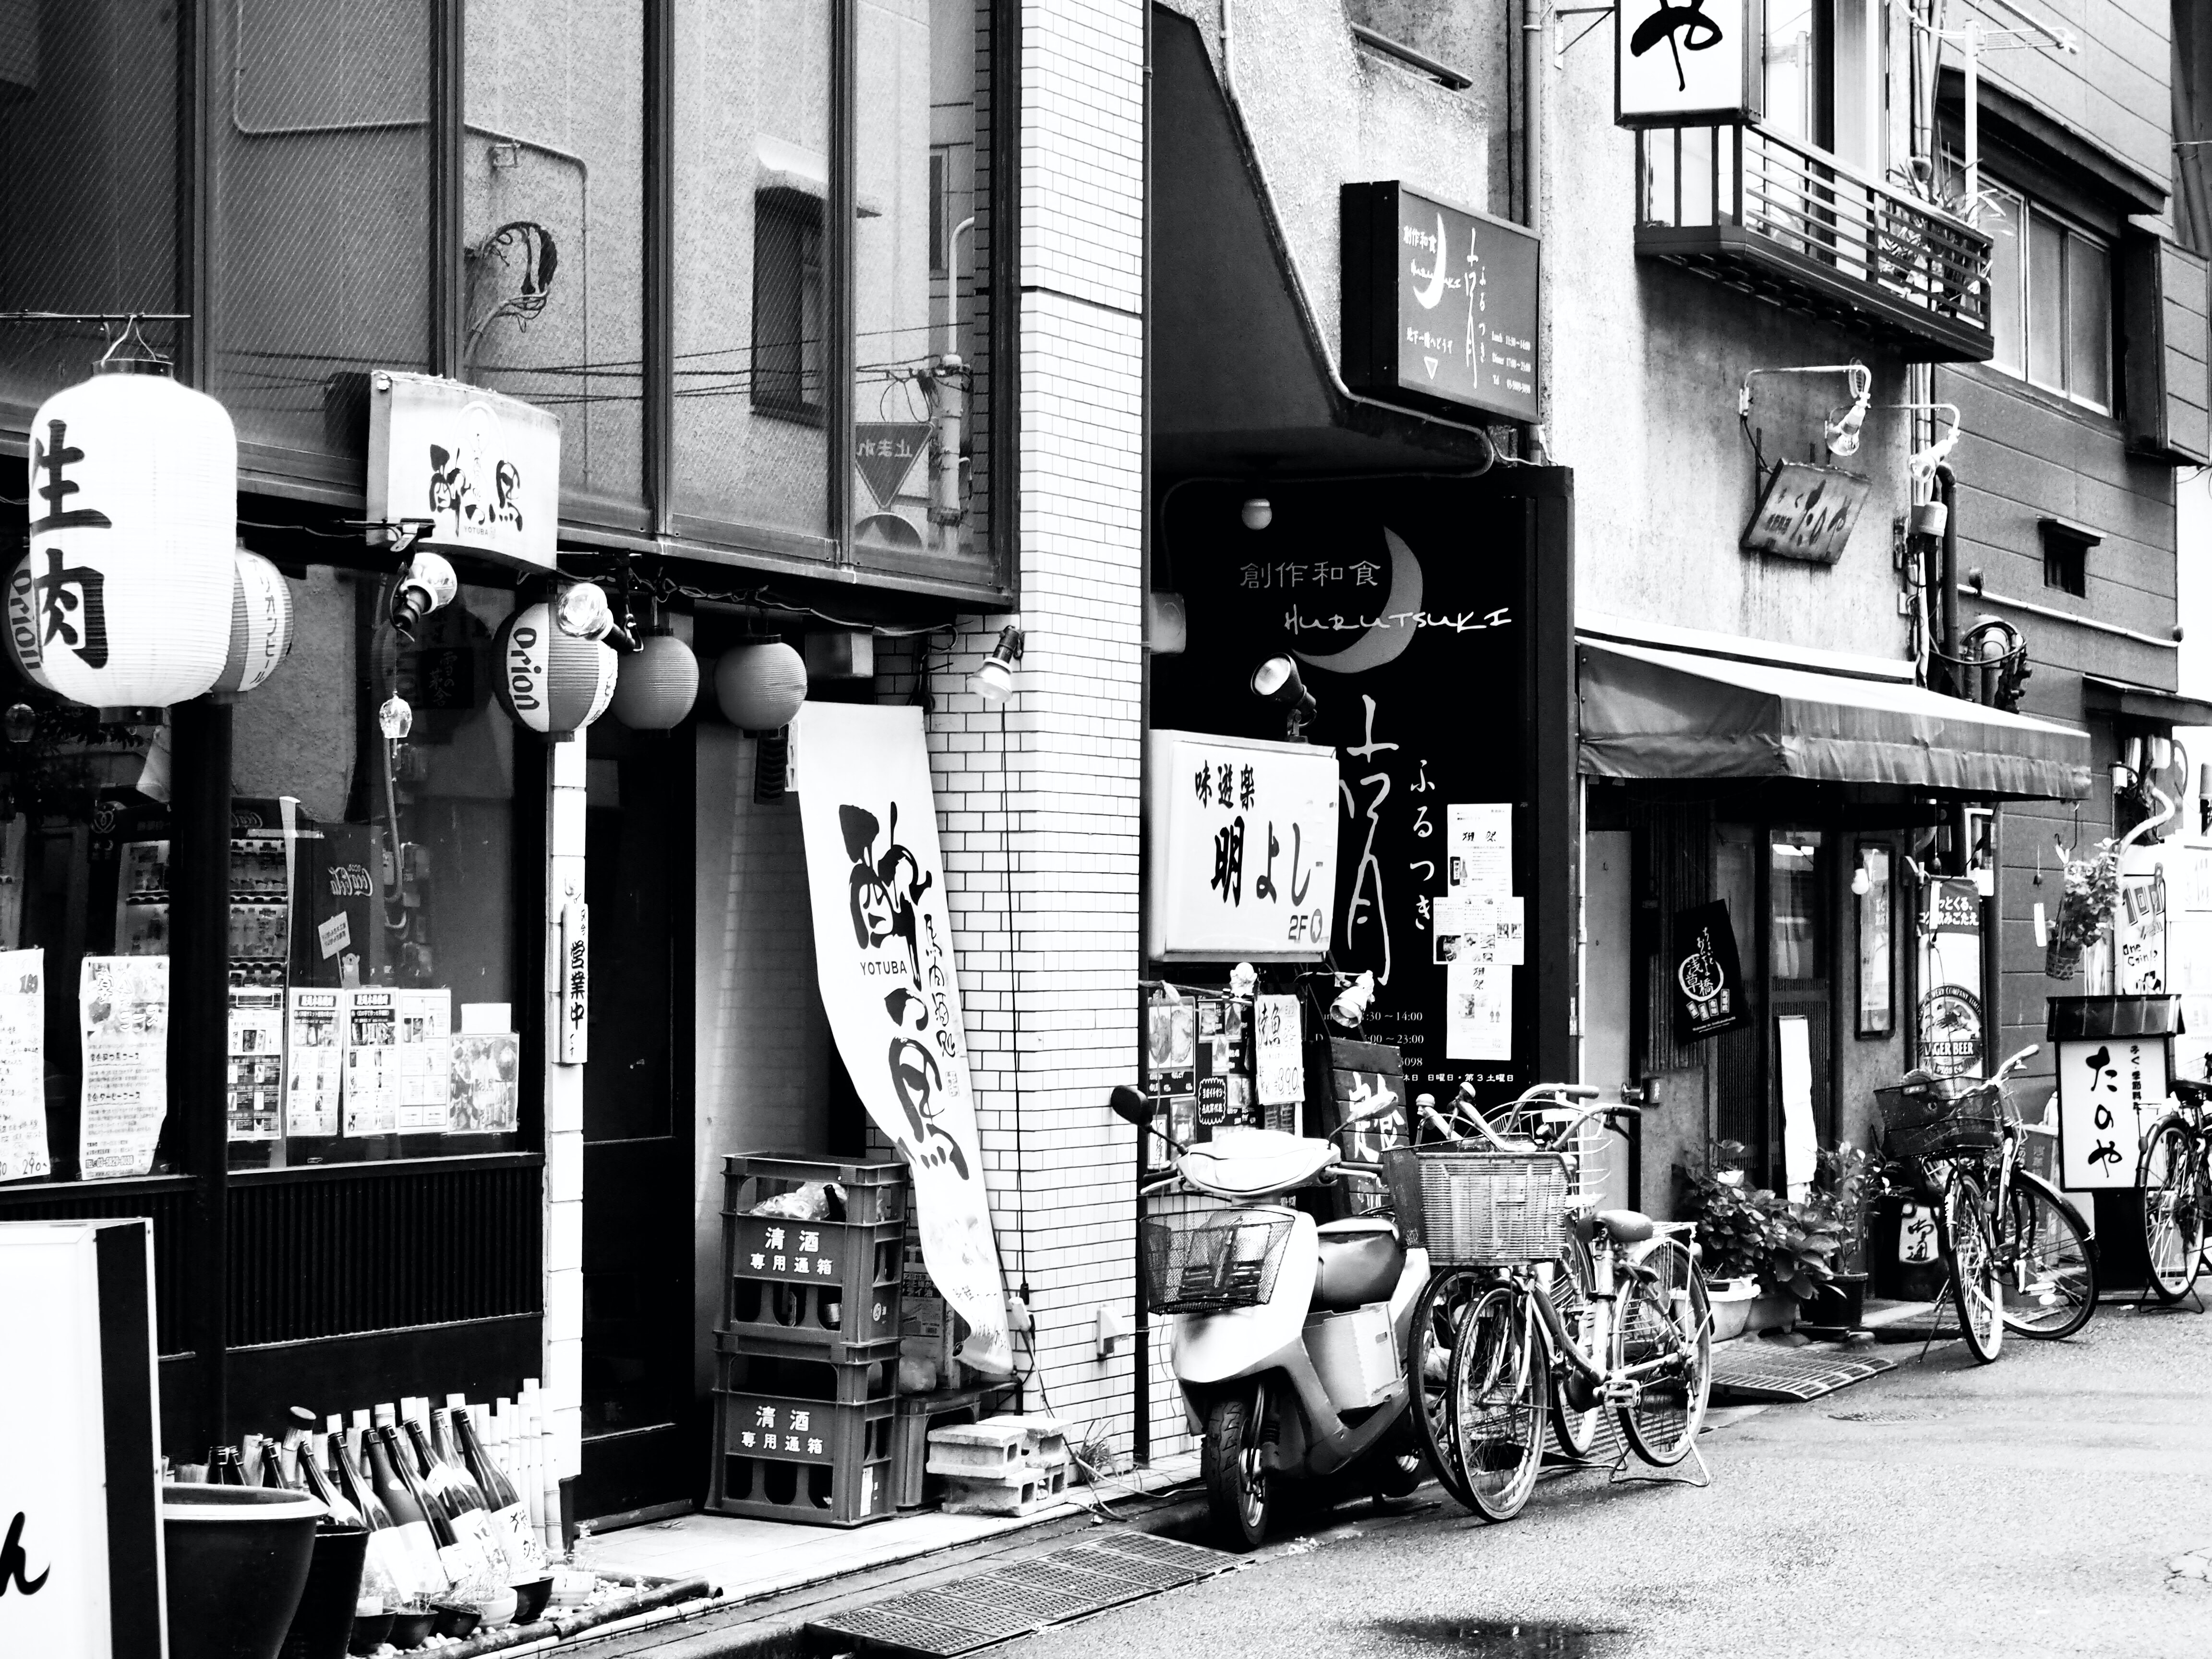 grayscaled photo of store front